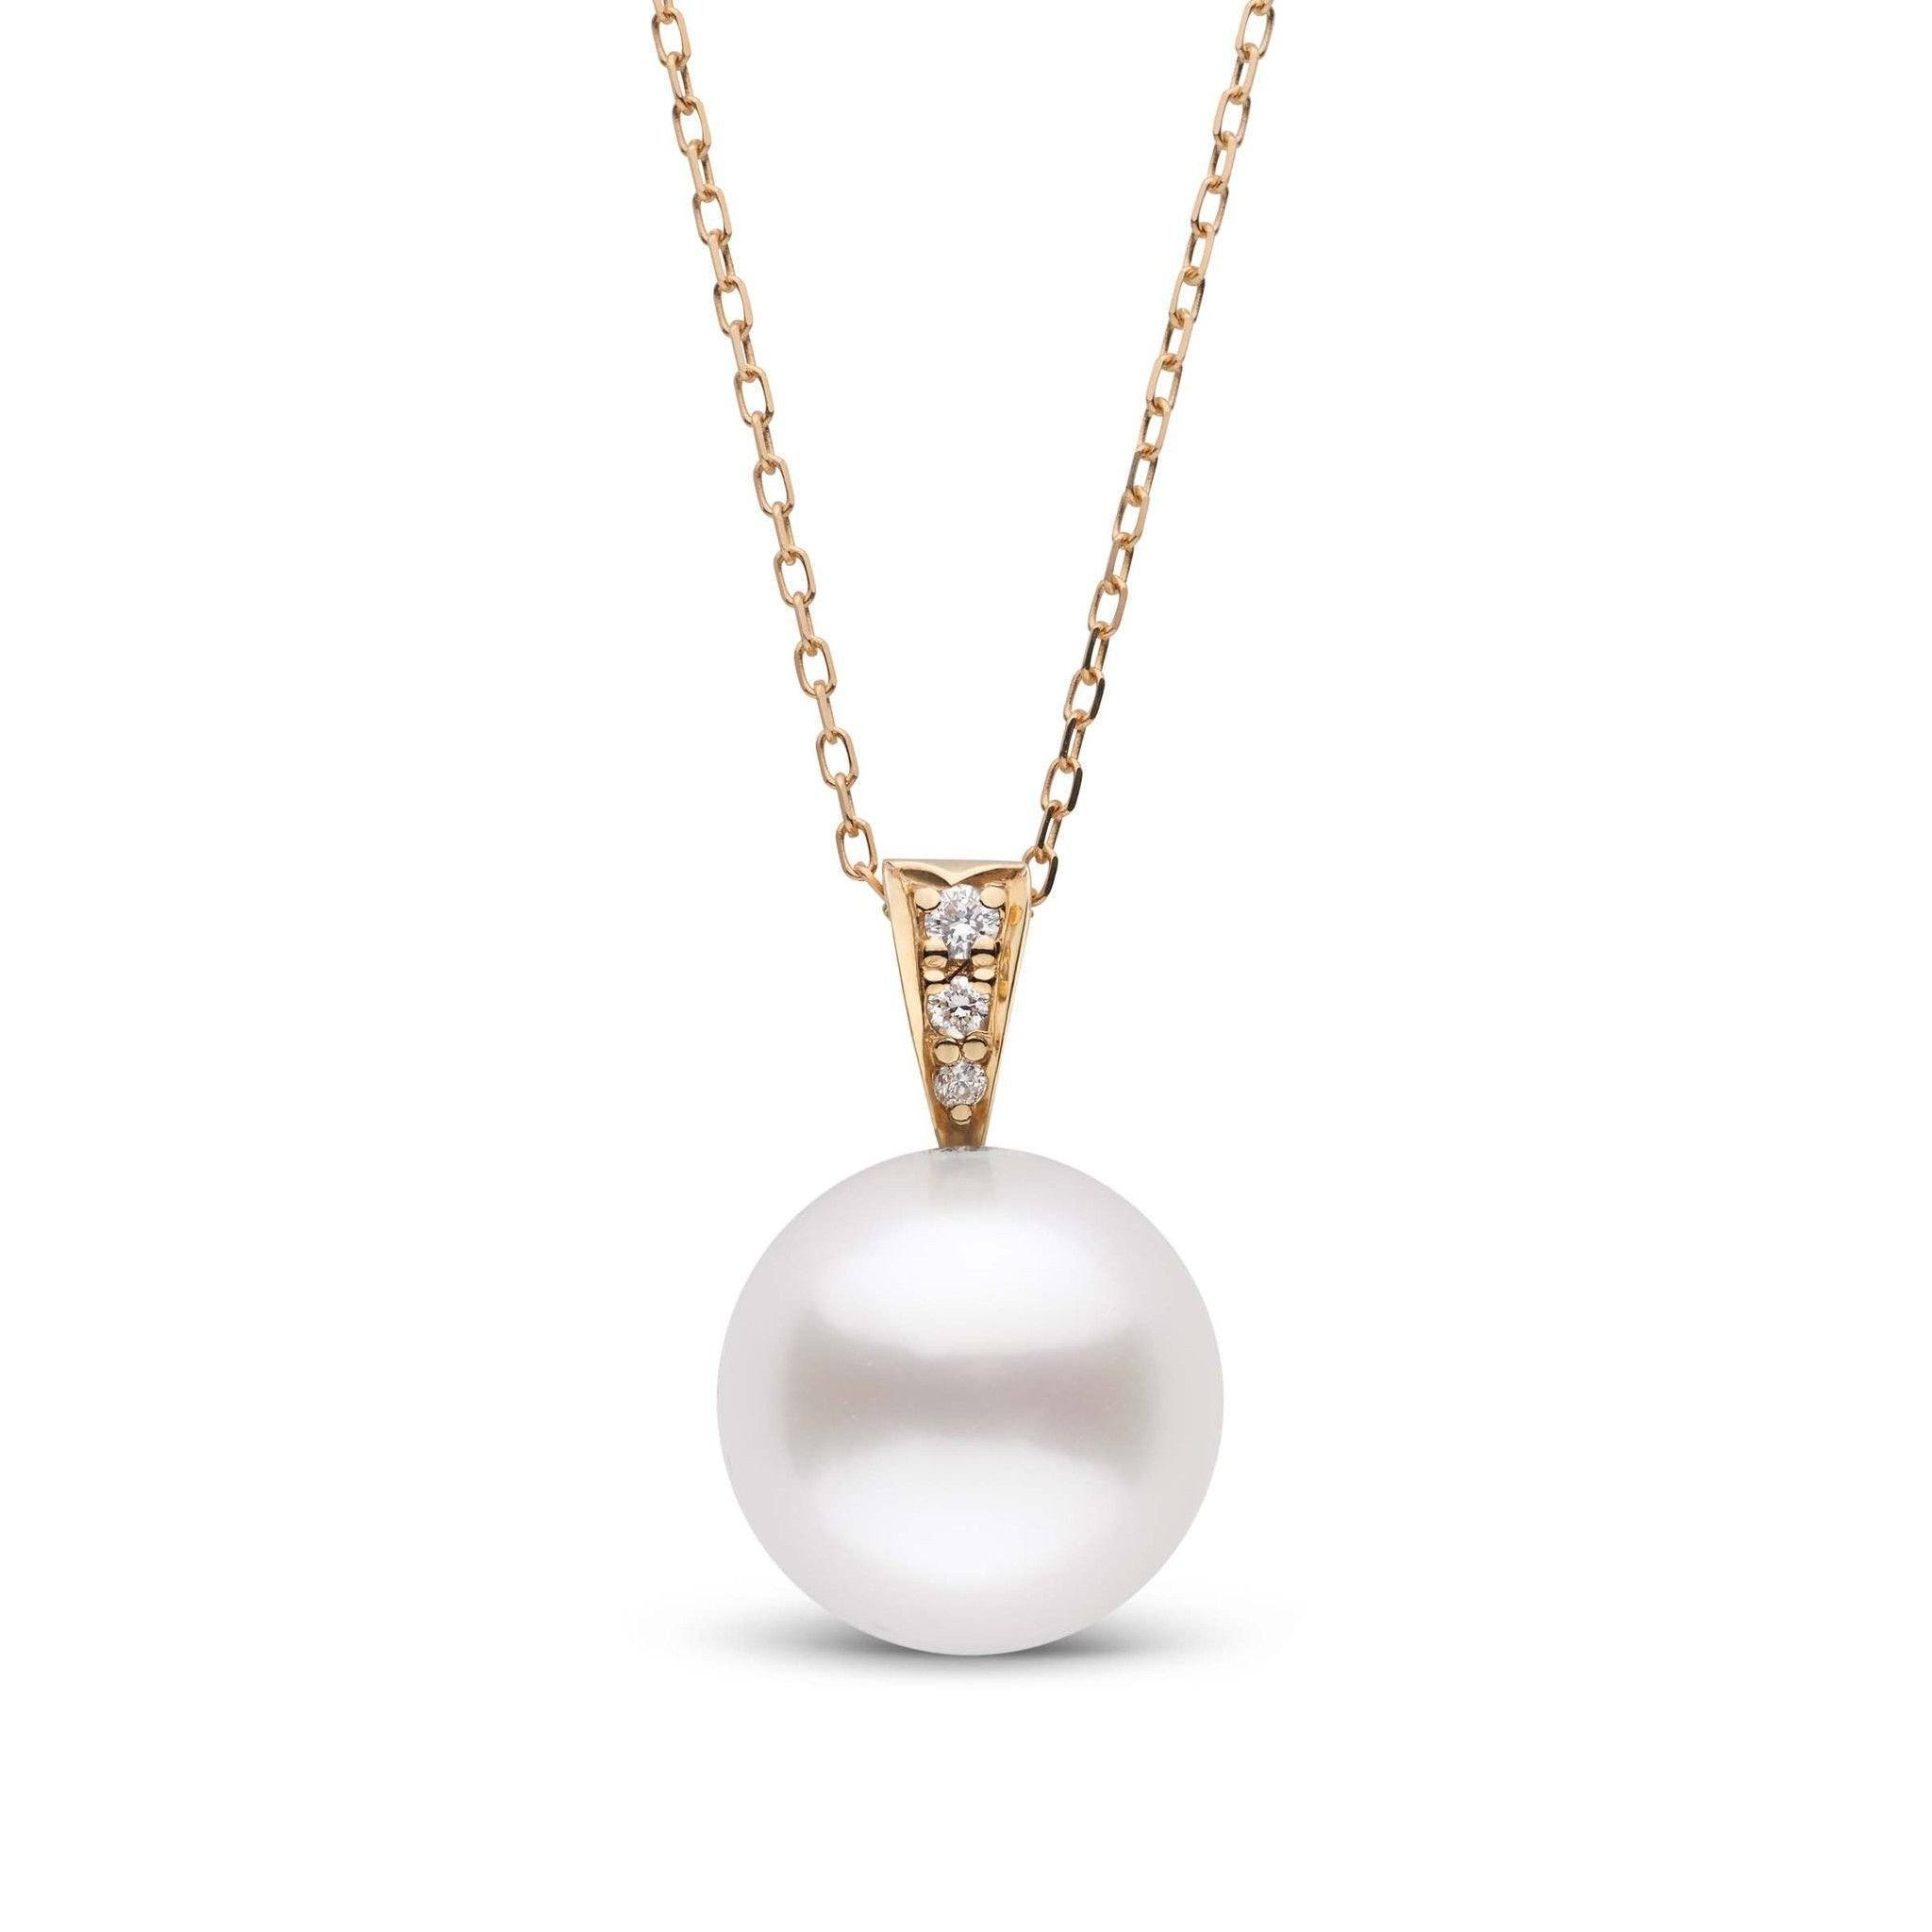 Desire Collection White 11.0-12.0 mm South Sea Pearl and Diamond Pendant